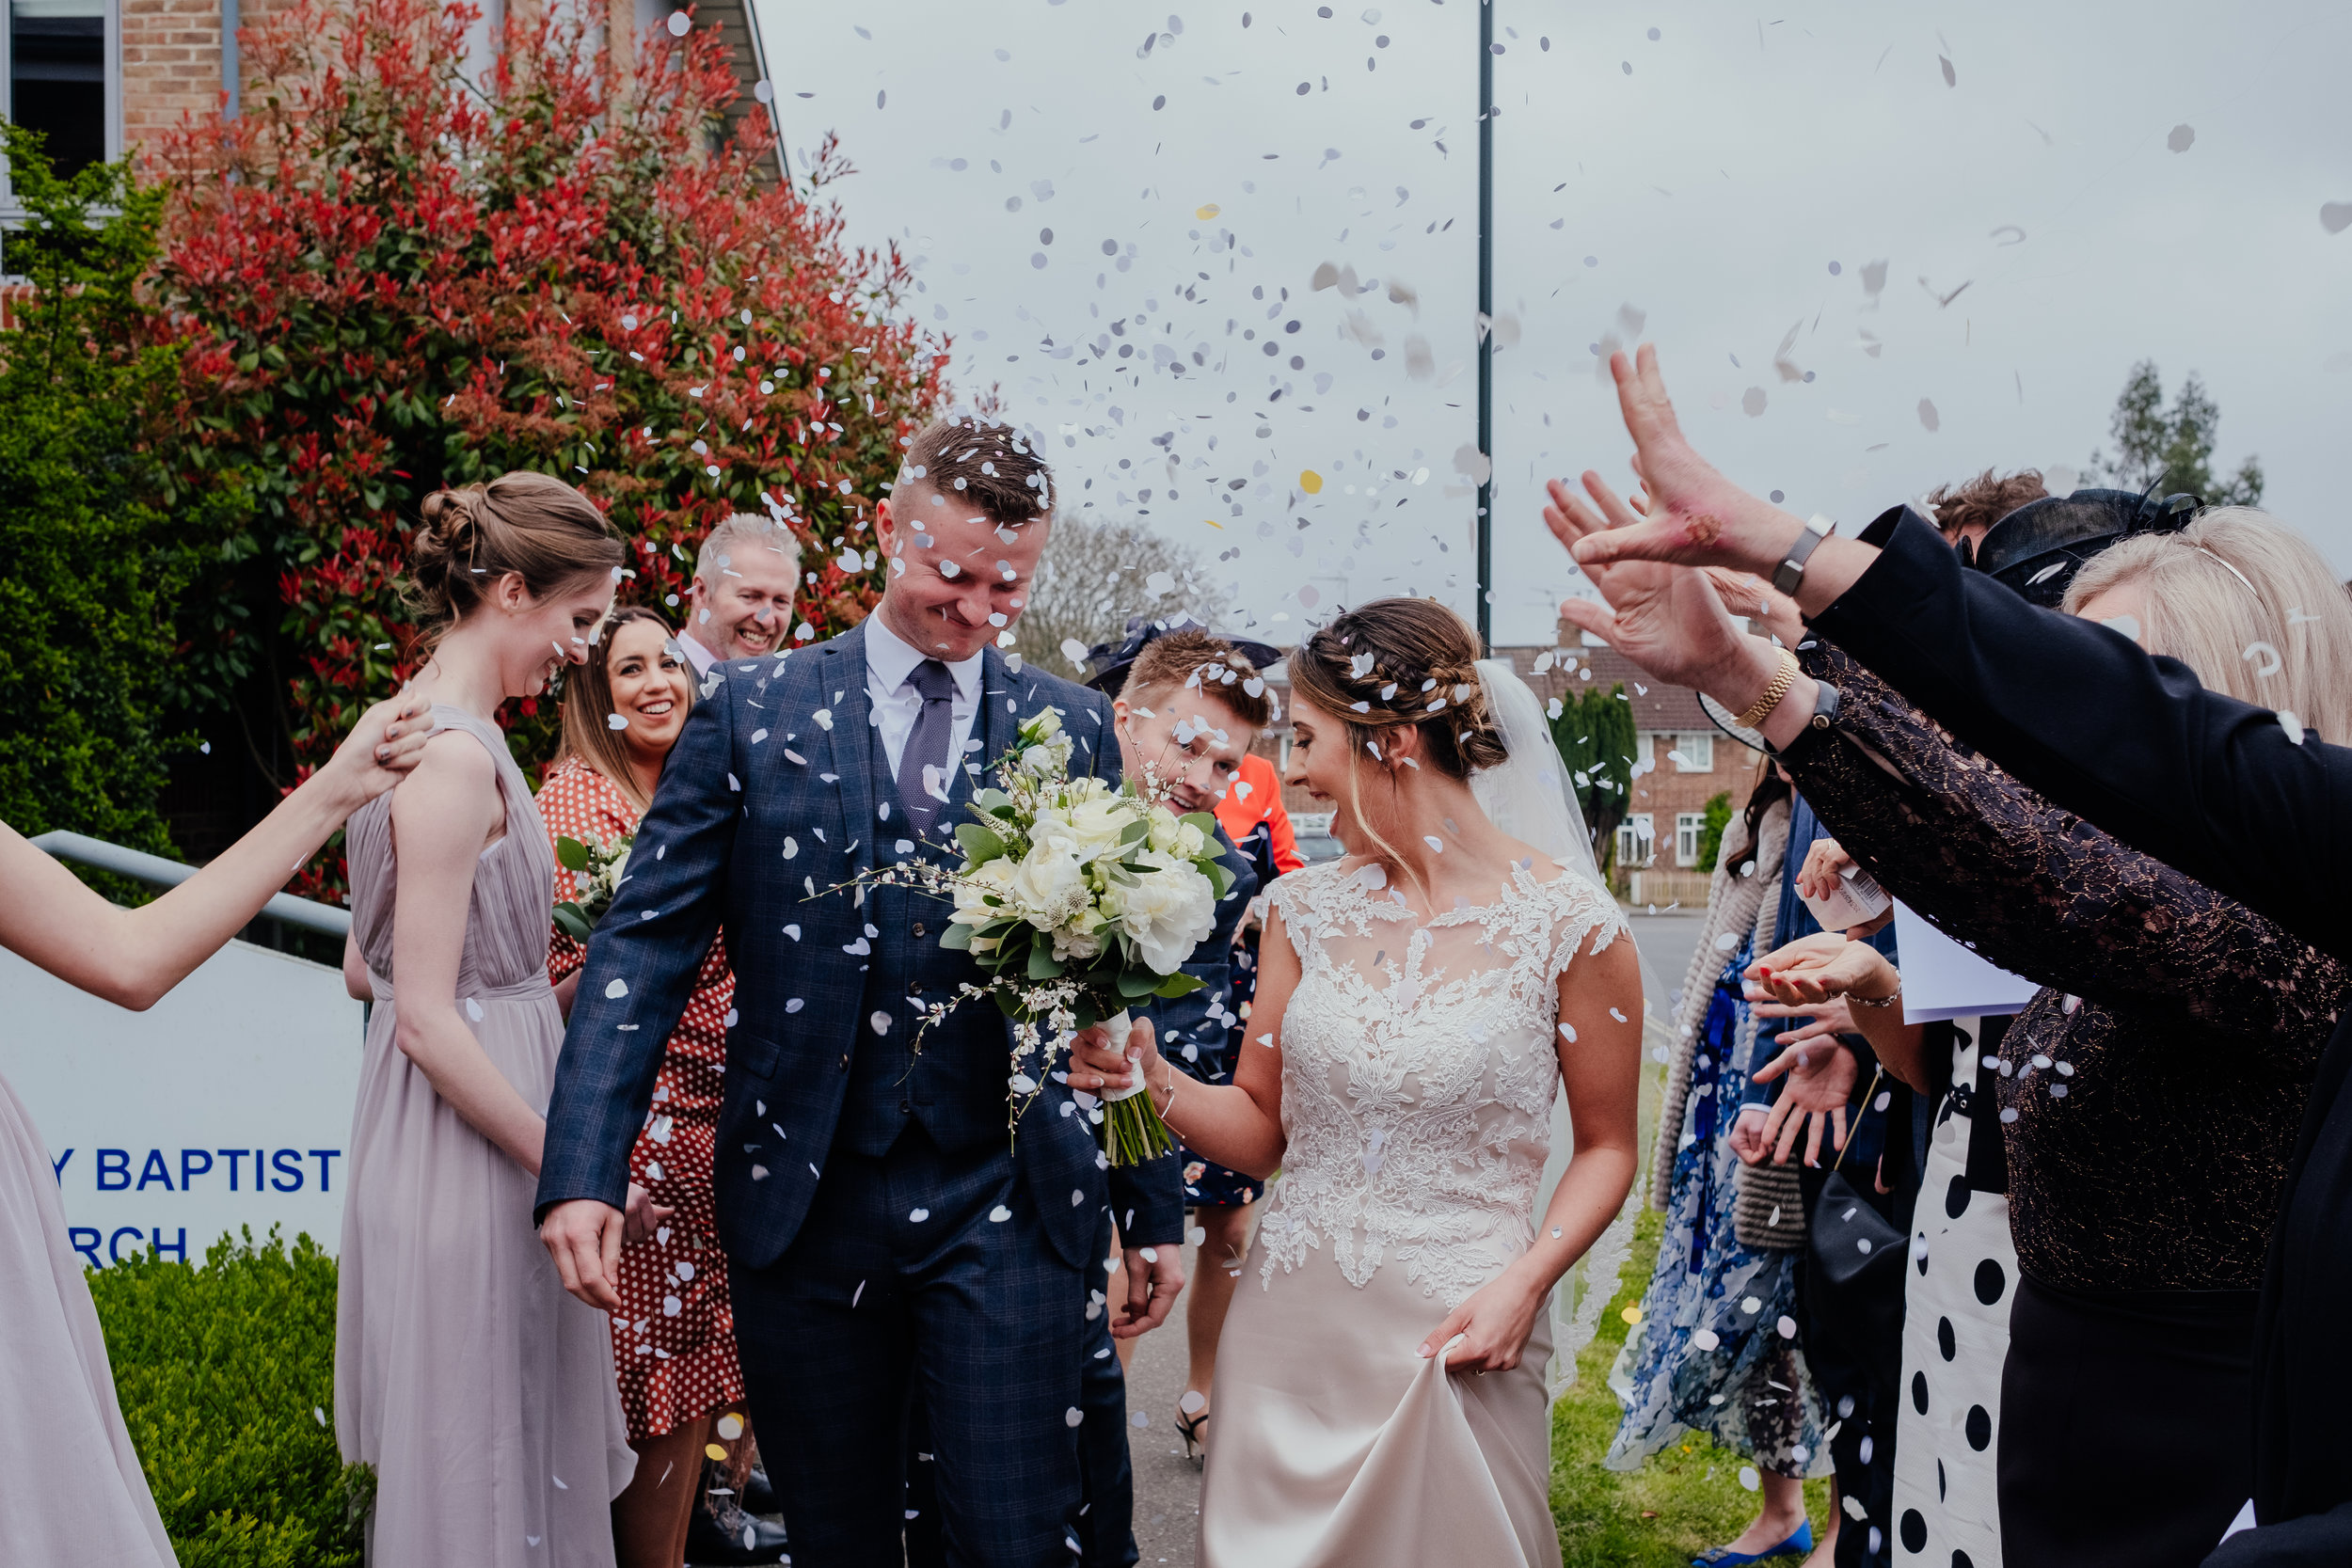 Guests throw confetti over newlyweds